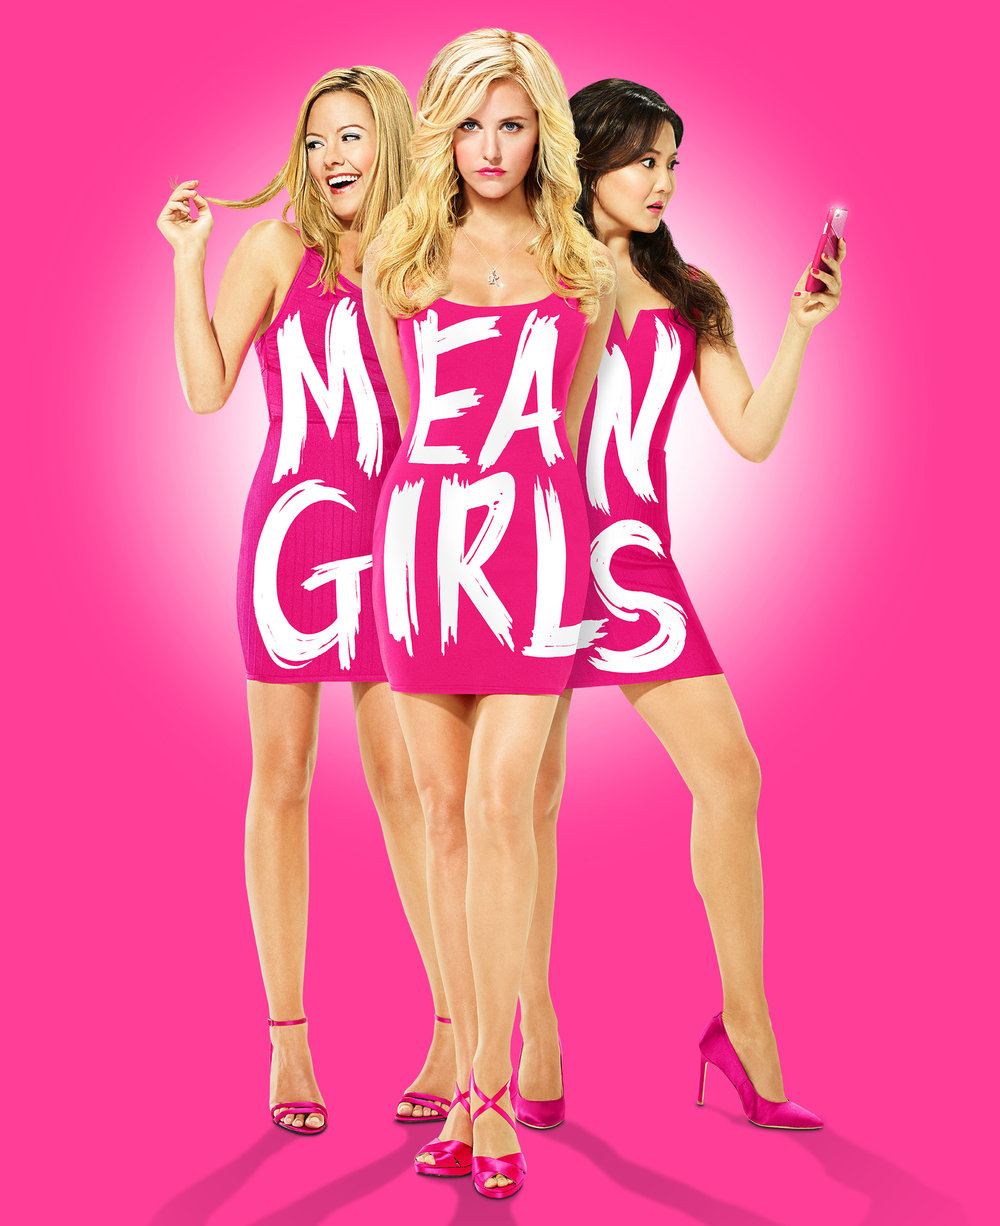 mean-girls-key-art-no-billing-tight_captioned.jpg